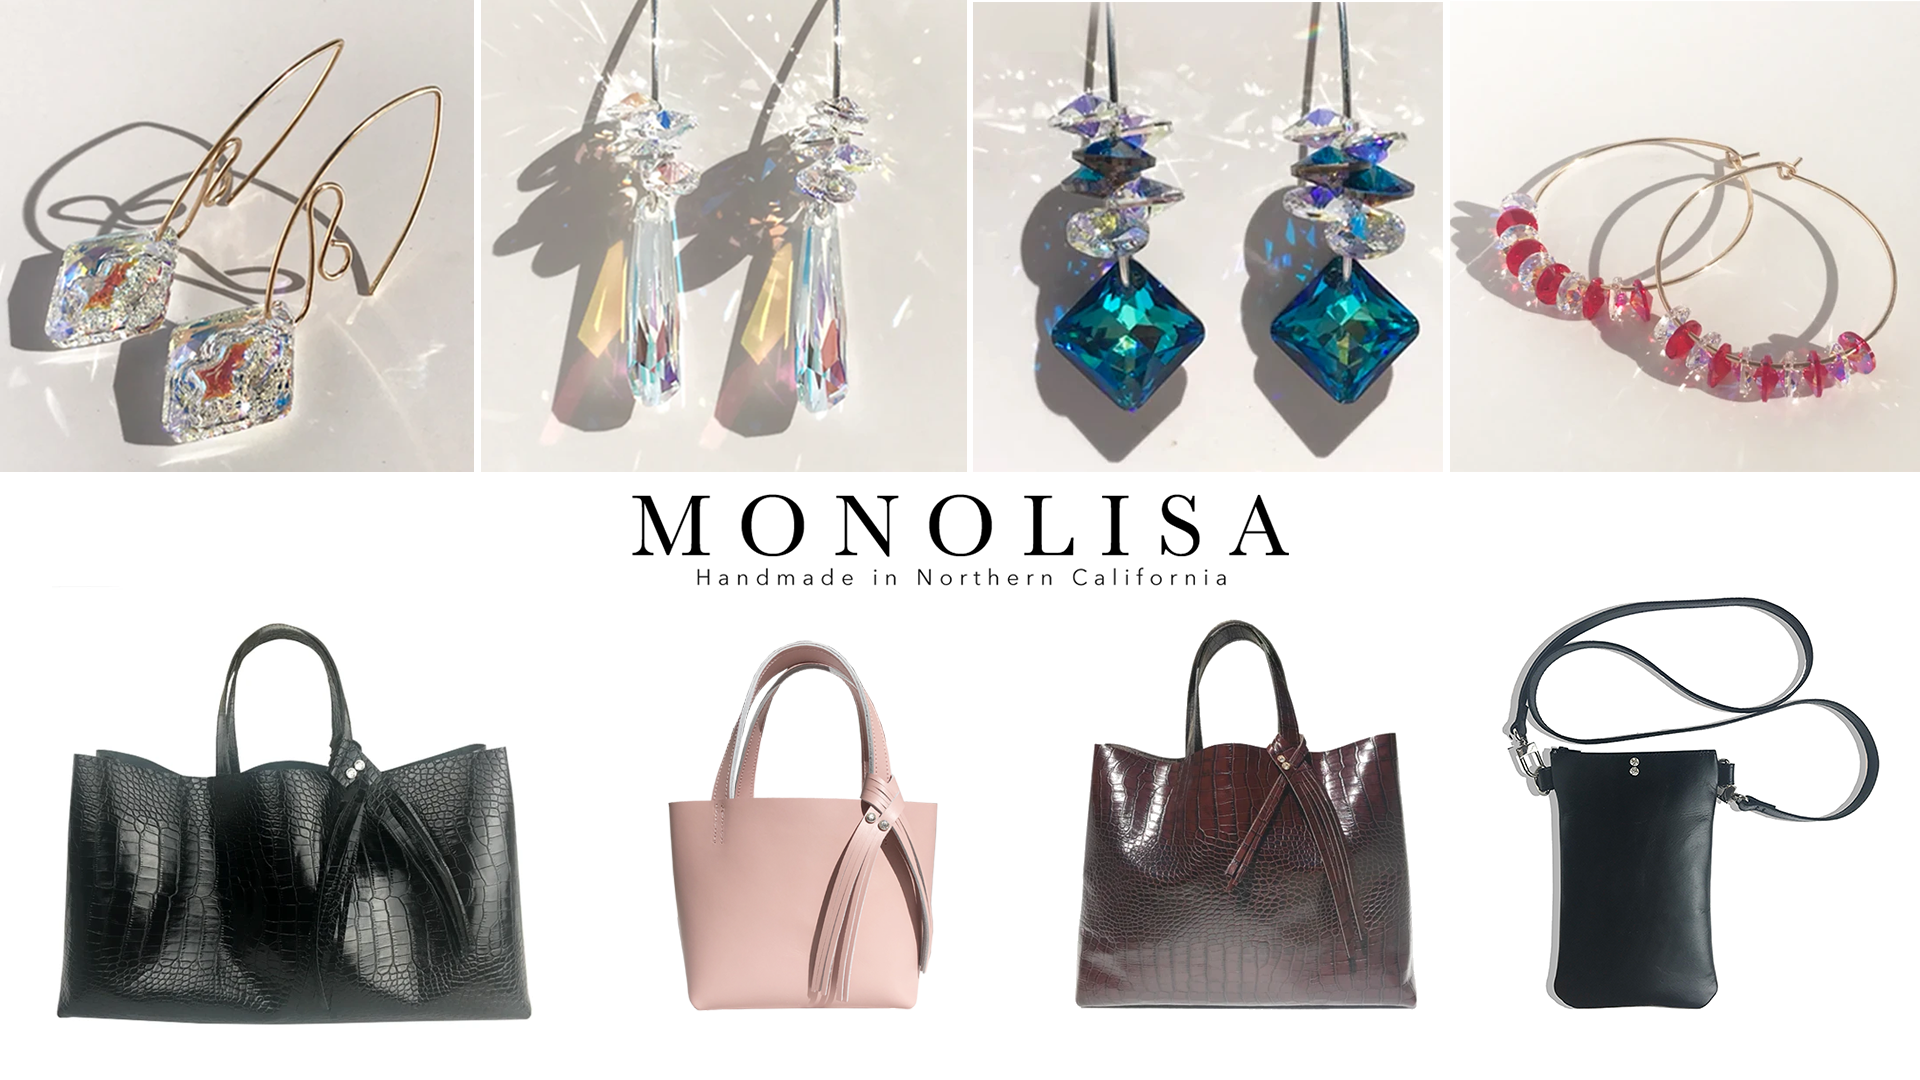 Alameda (Mother's Day) Spring Festival 2020 - Featuring MONOLISA HANDMADE IN CALIFORNIA - Bags and Jewelry Made in California